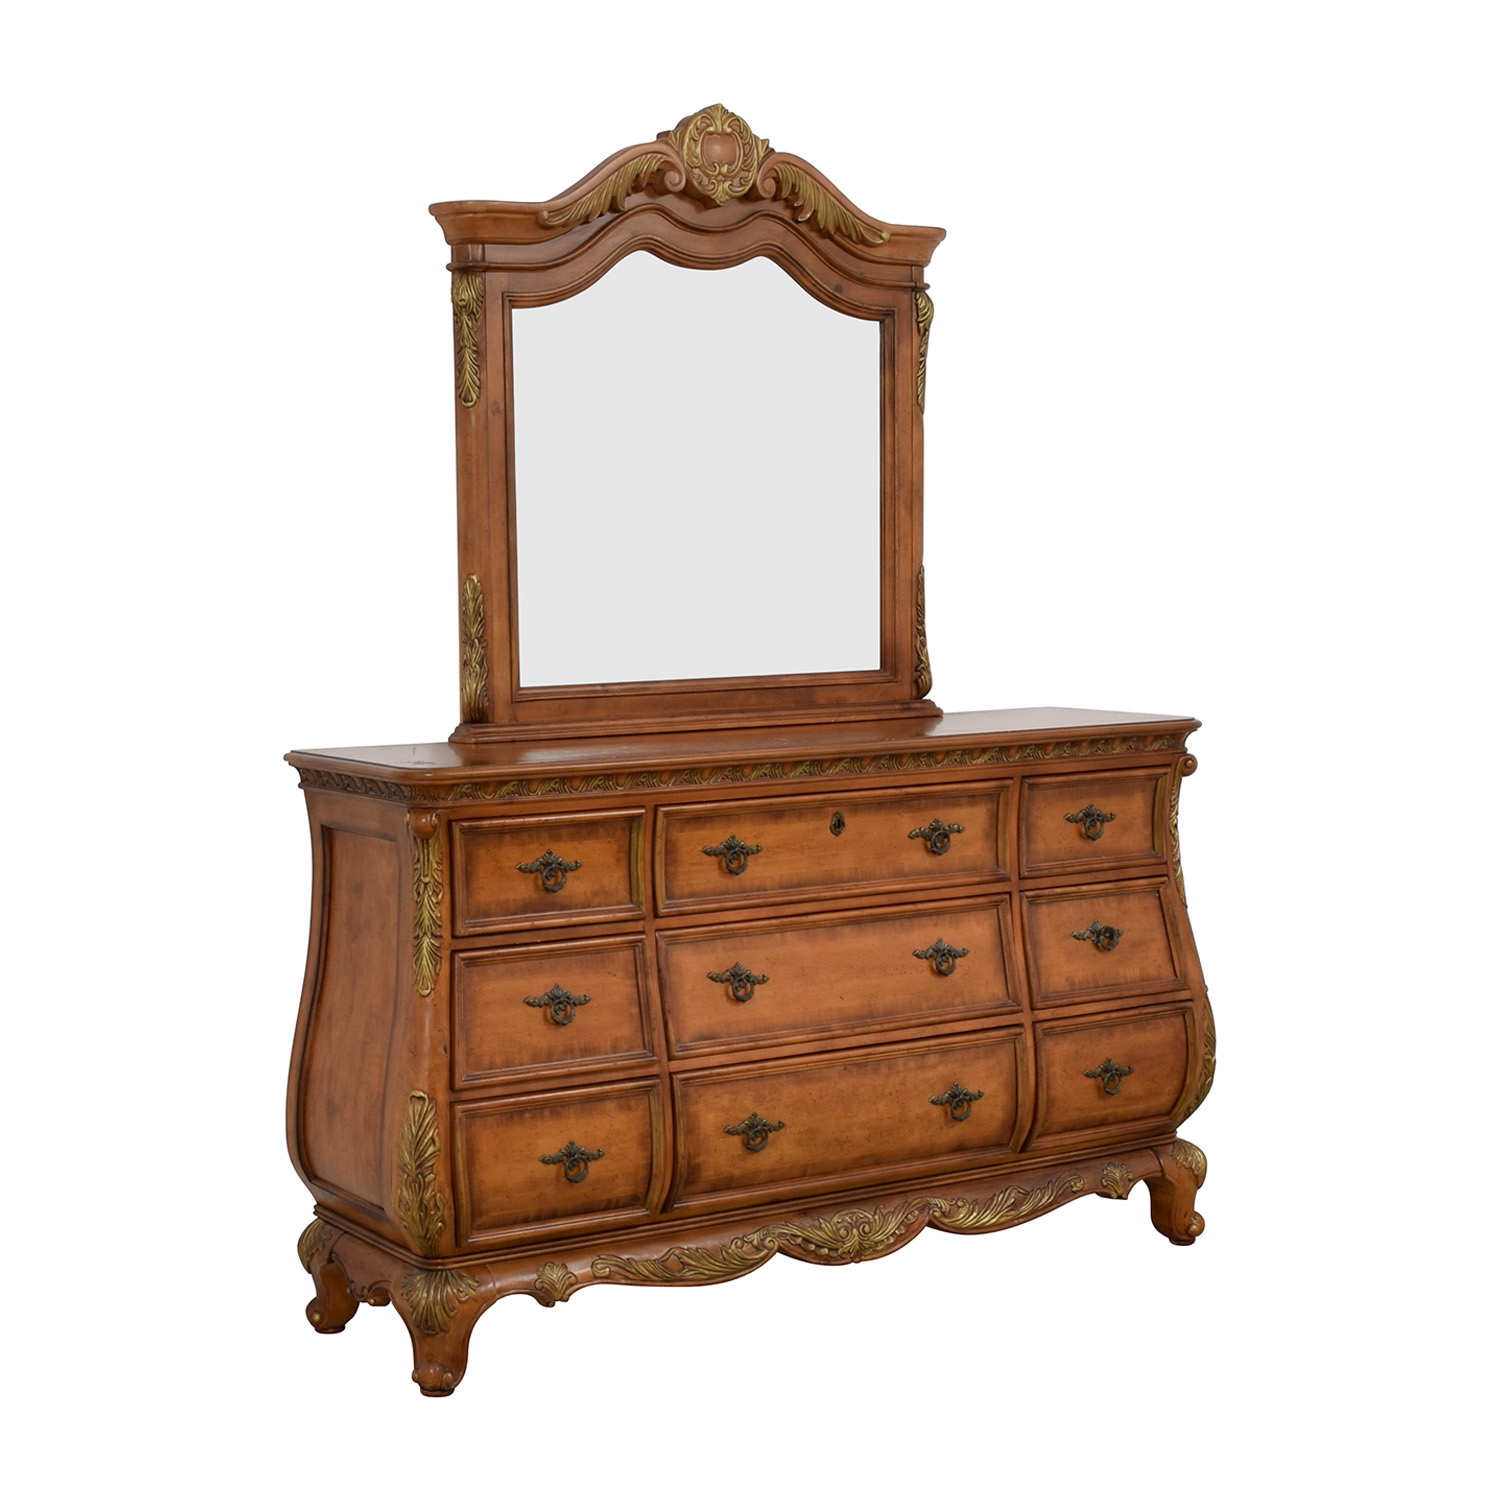 buy Raymour & Flanigan Nine-Drawer Dovetailed Dresser with Mirror Raymour & Flanigan Storage